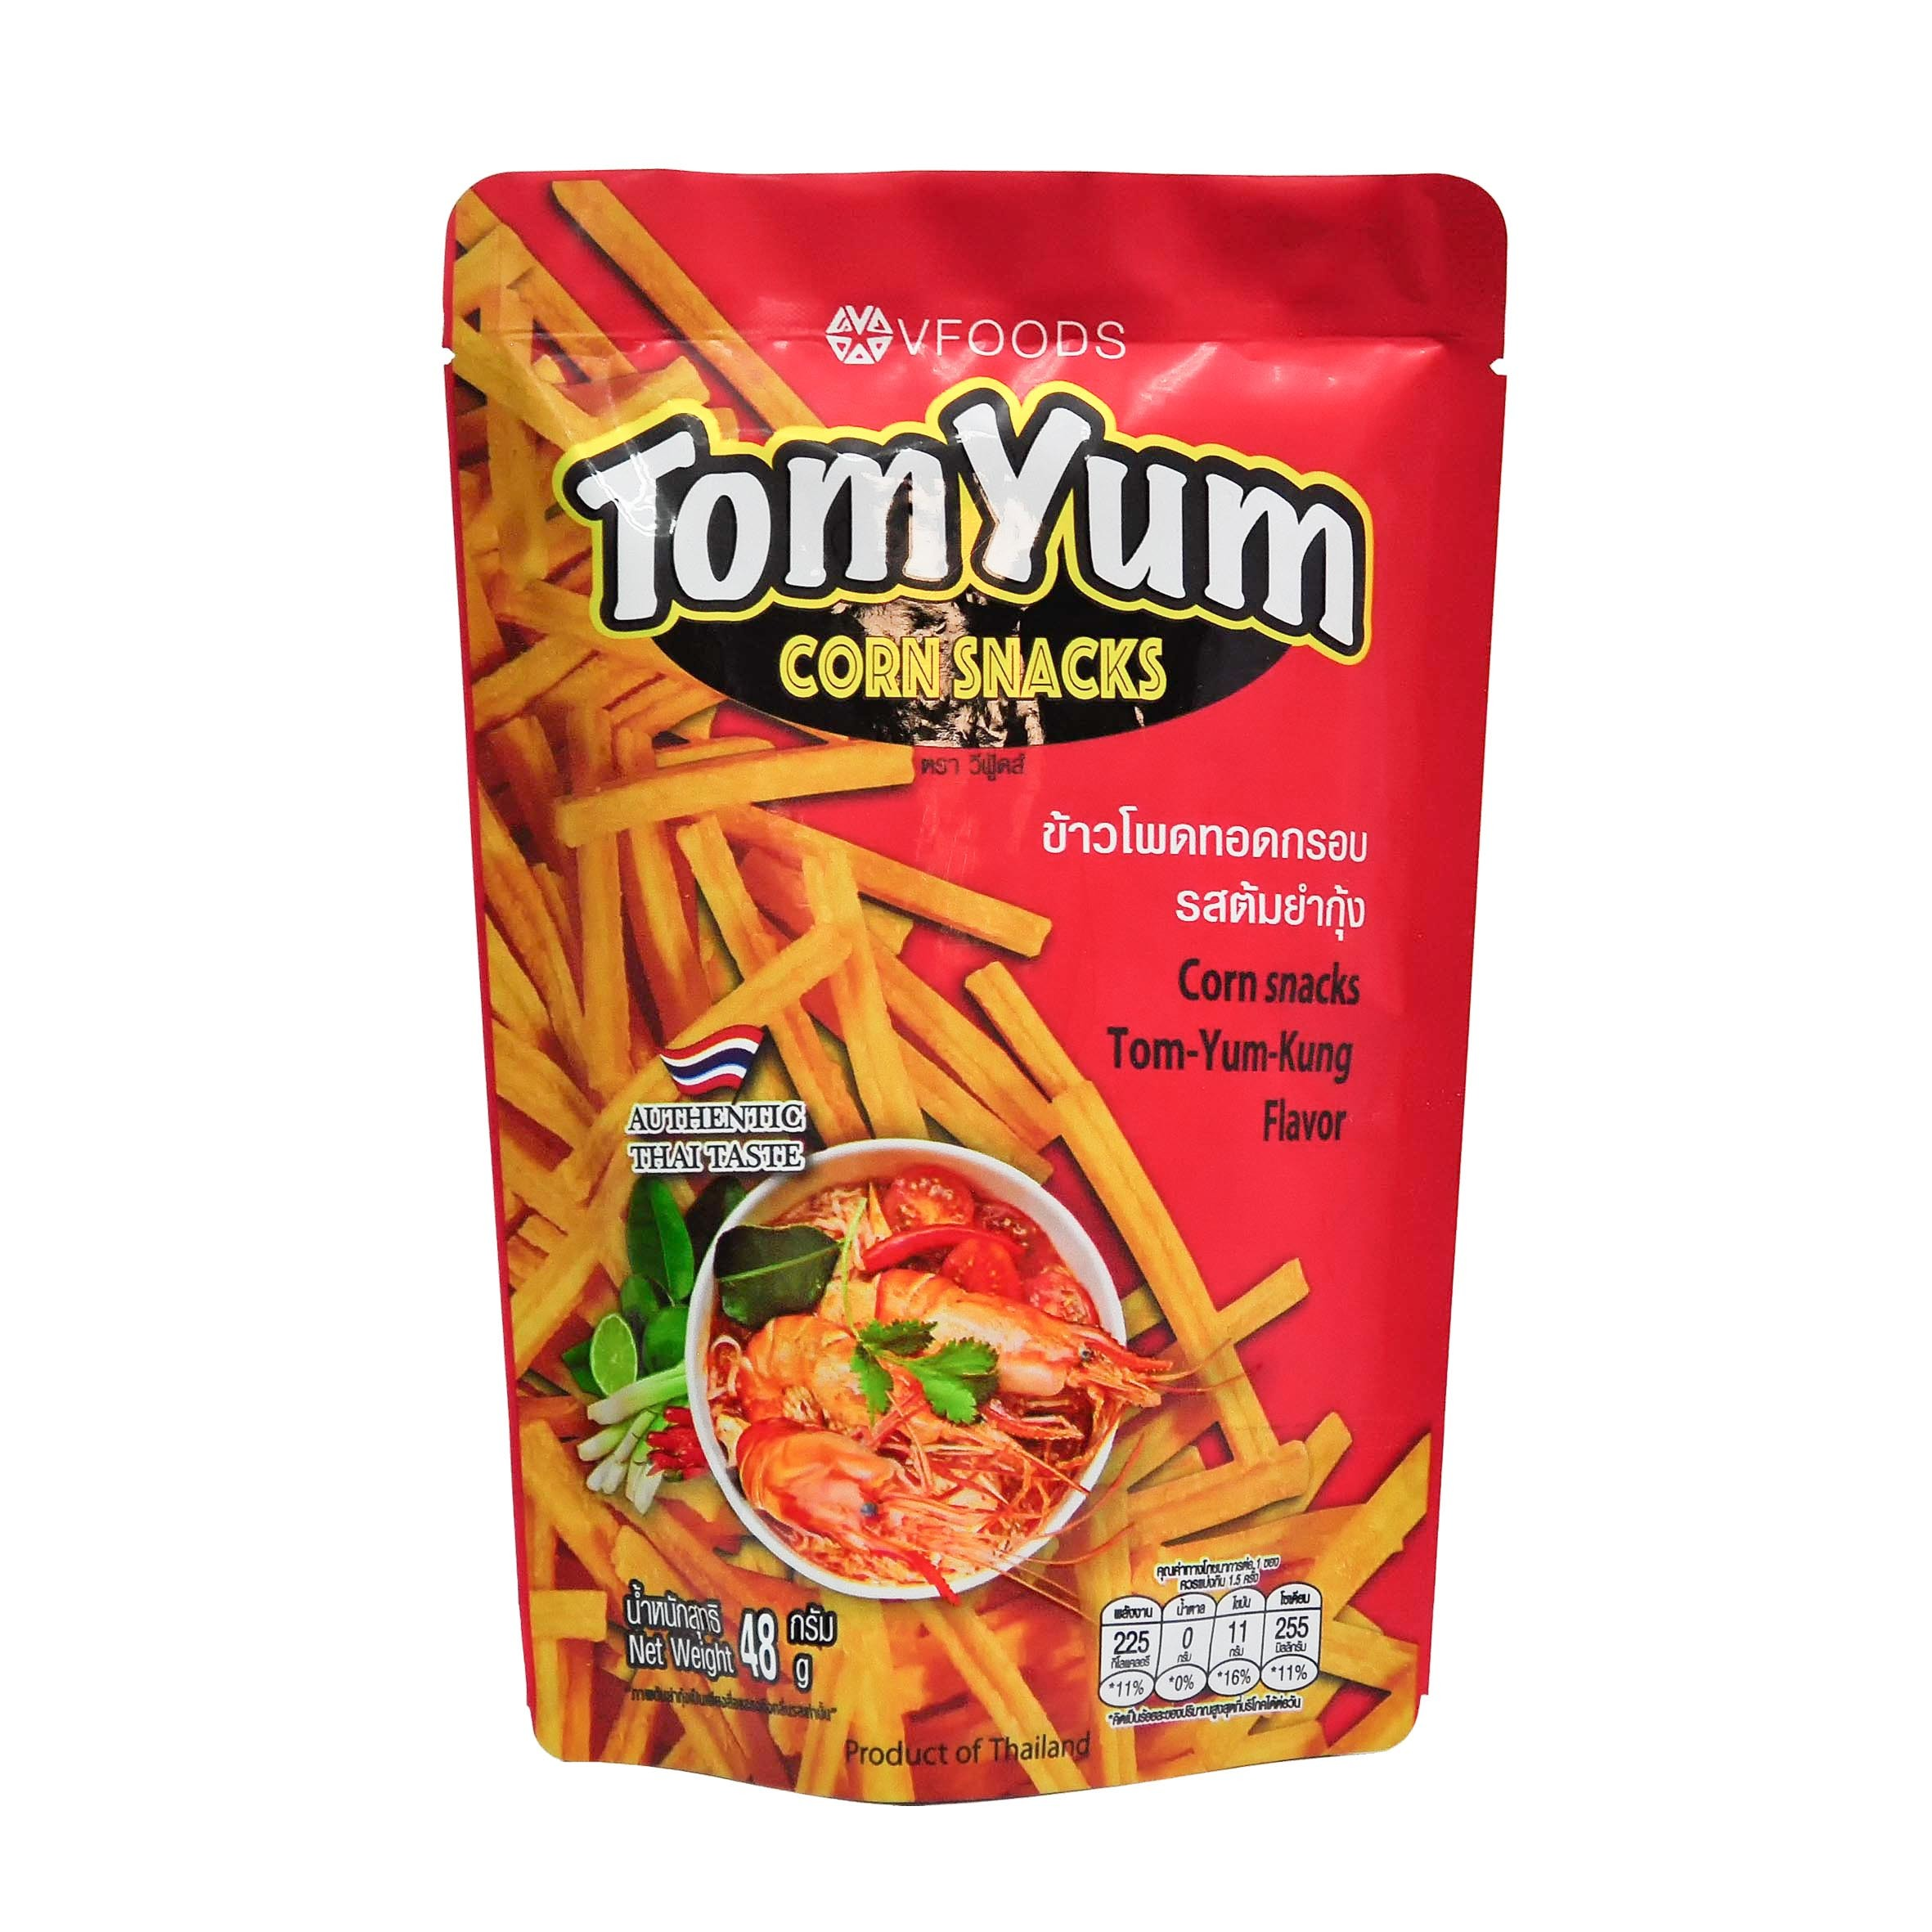 Tom Yum Kung Corn Snacks VFoods Front.jpg